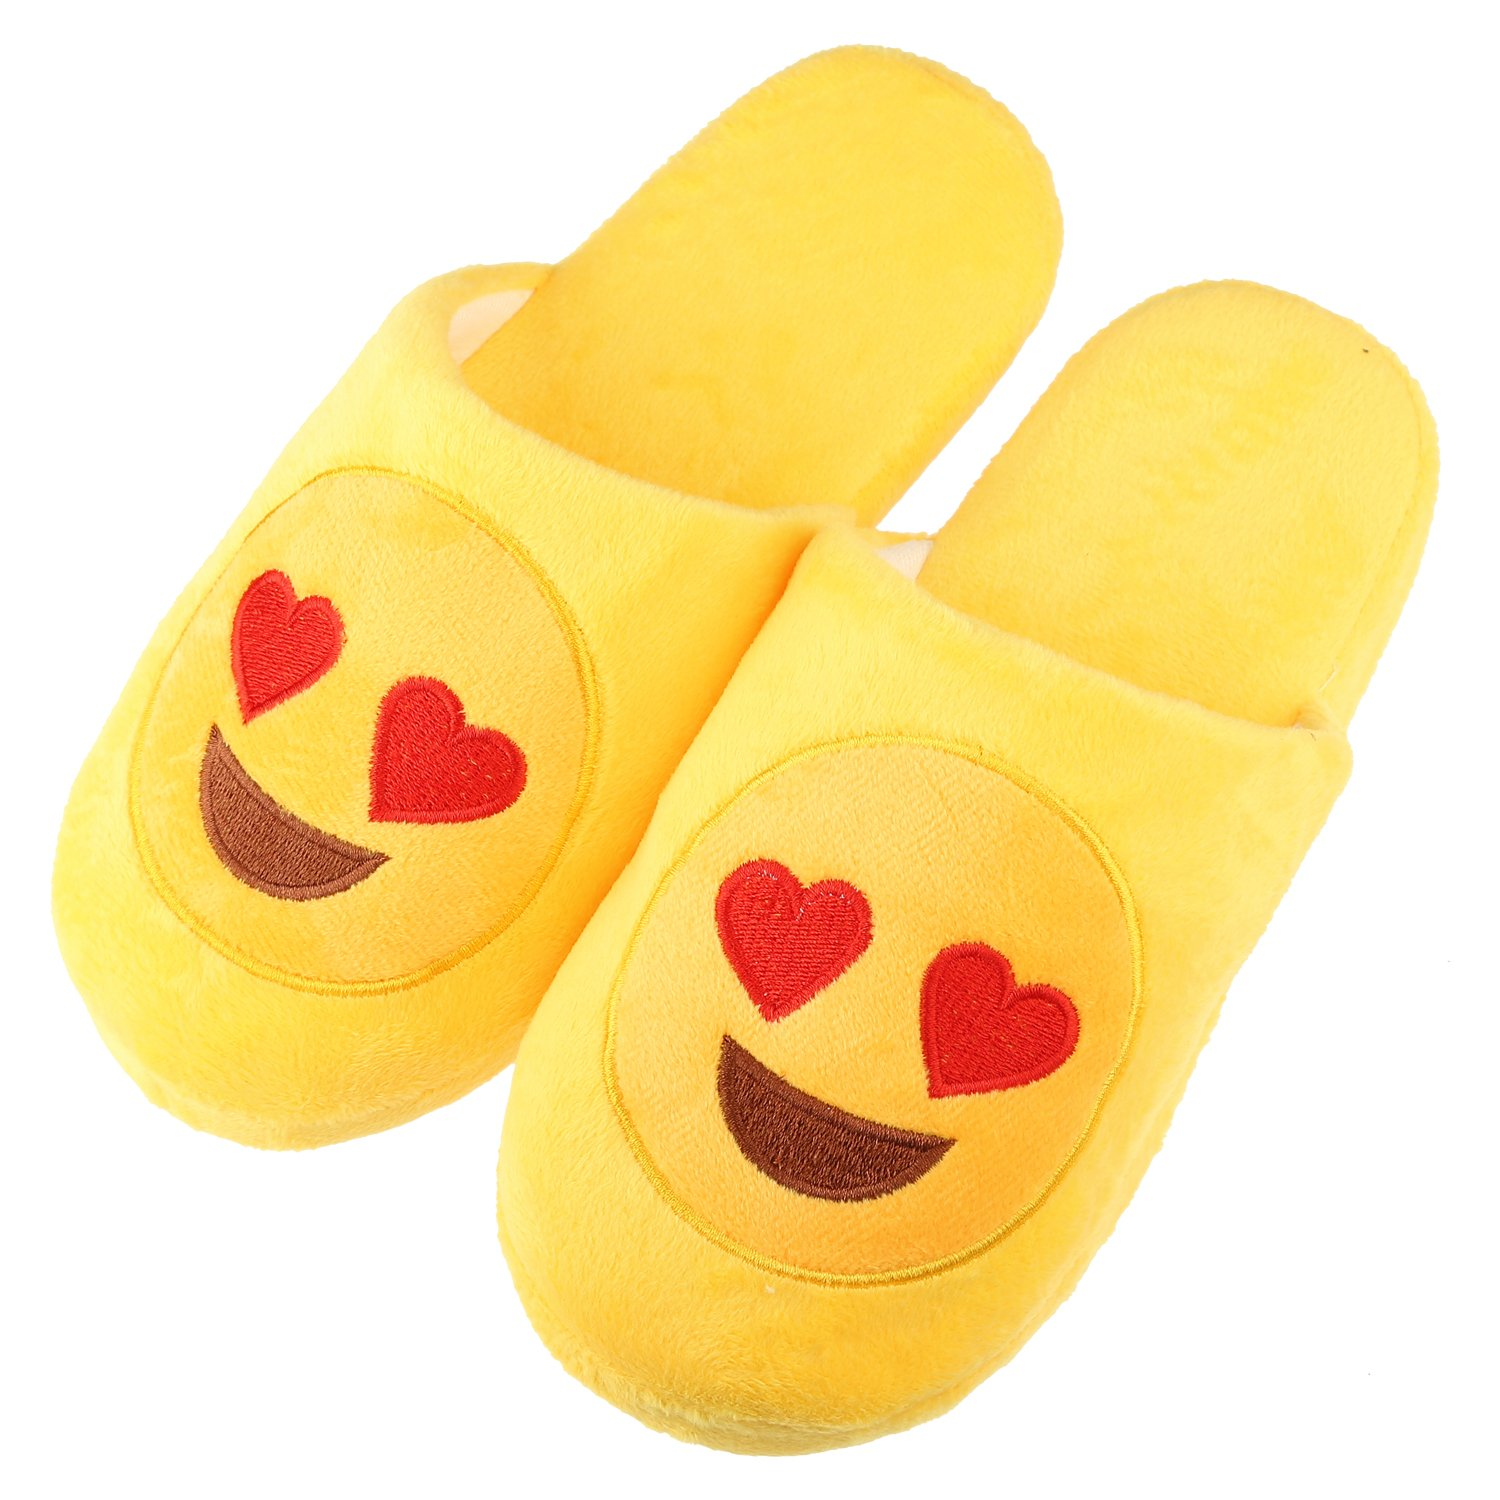 Emoji Slippers for Women Girls with Memory Foam Cute Cartoon Cozy Indoor Winter Shoes Soft Plush Mules House Home Hotel Bedroom Casual Non-Slip Slip-on Footwear (Label Size M= US7-US8.5, Love Eyes)